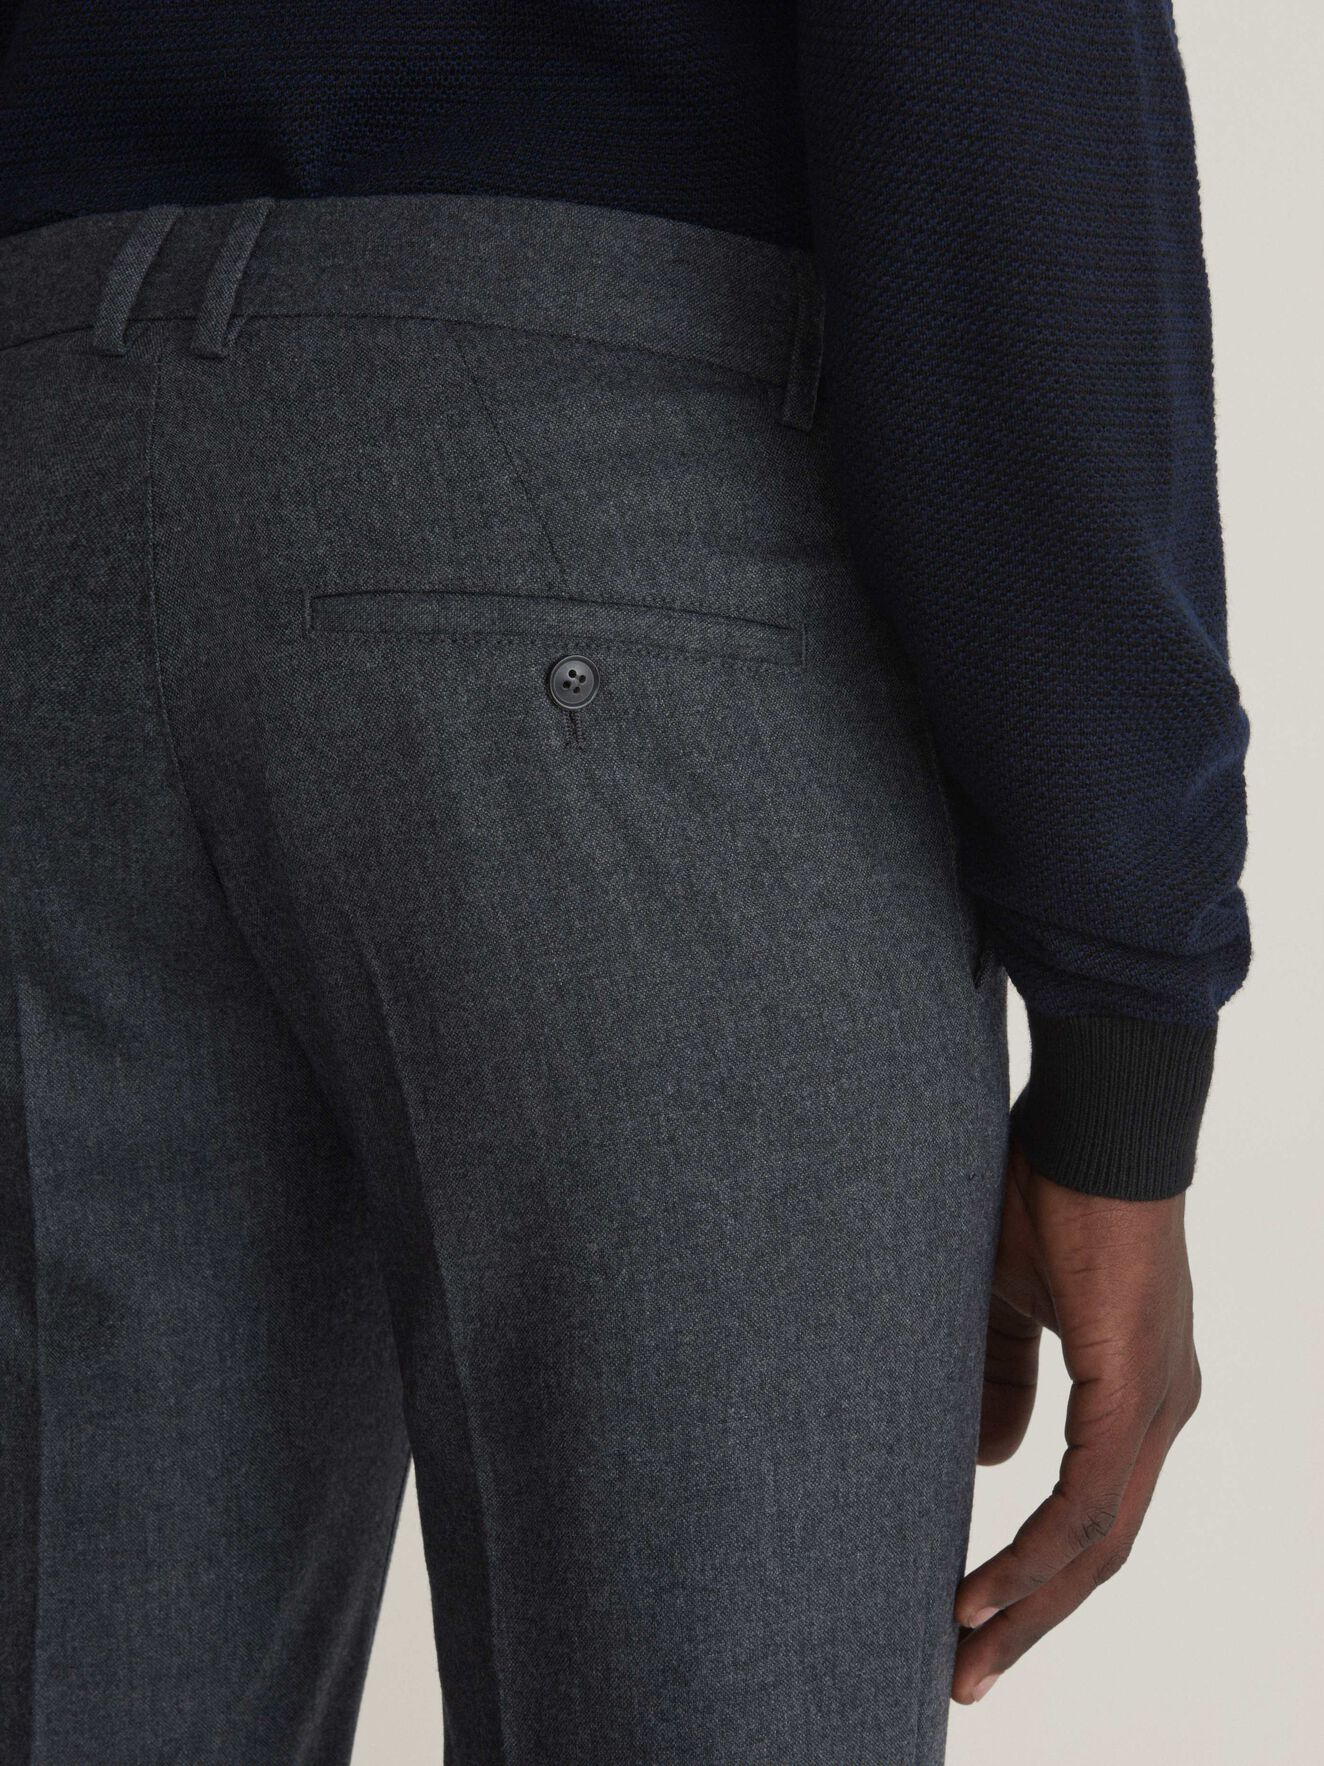 Todman Trousers in Med Grey Mel from Tiger of Sweden